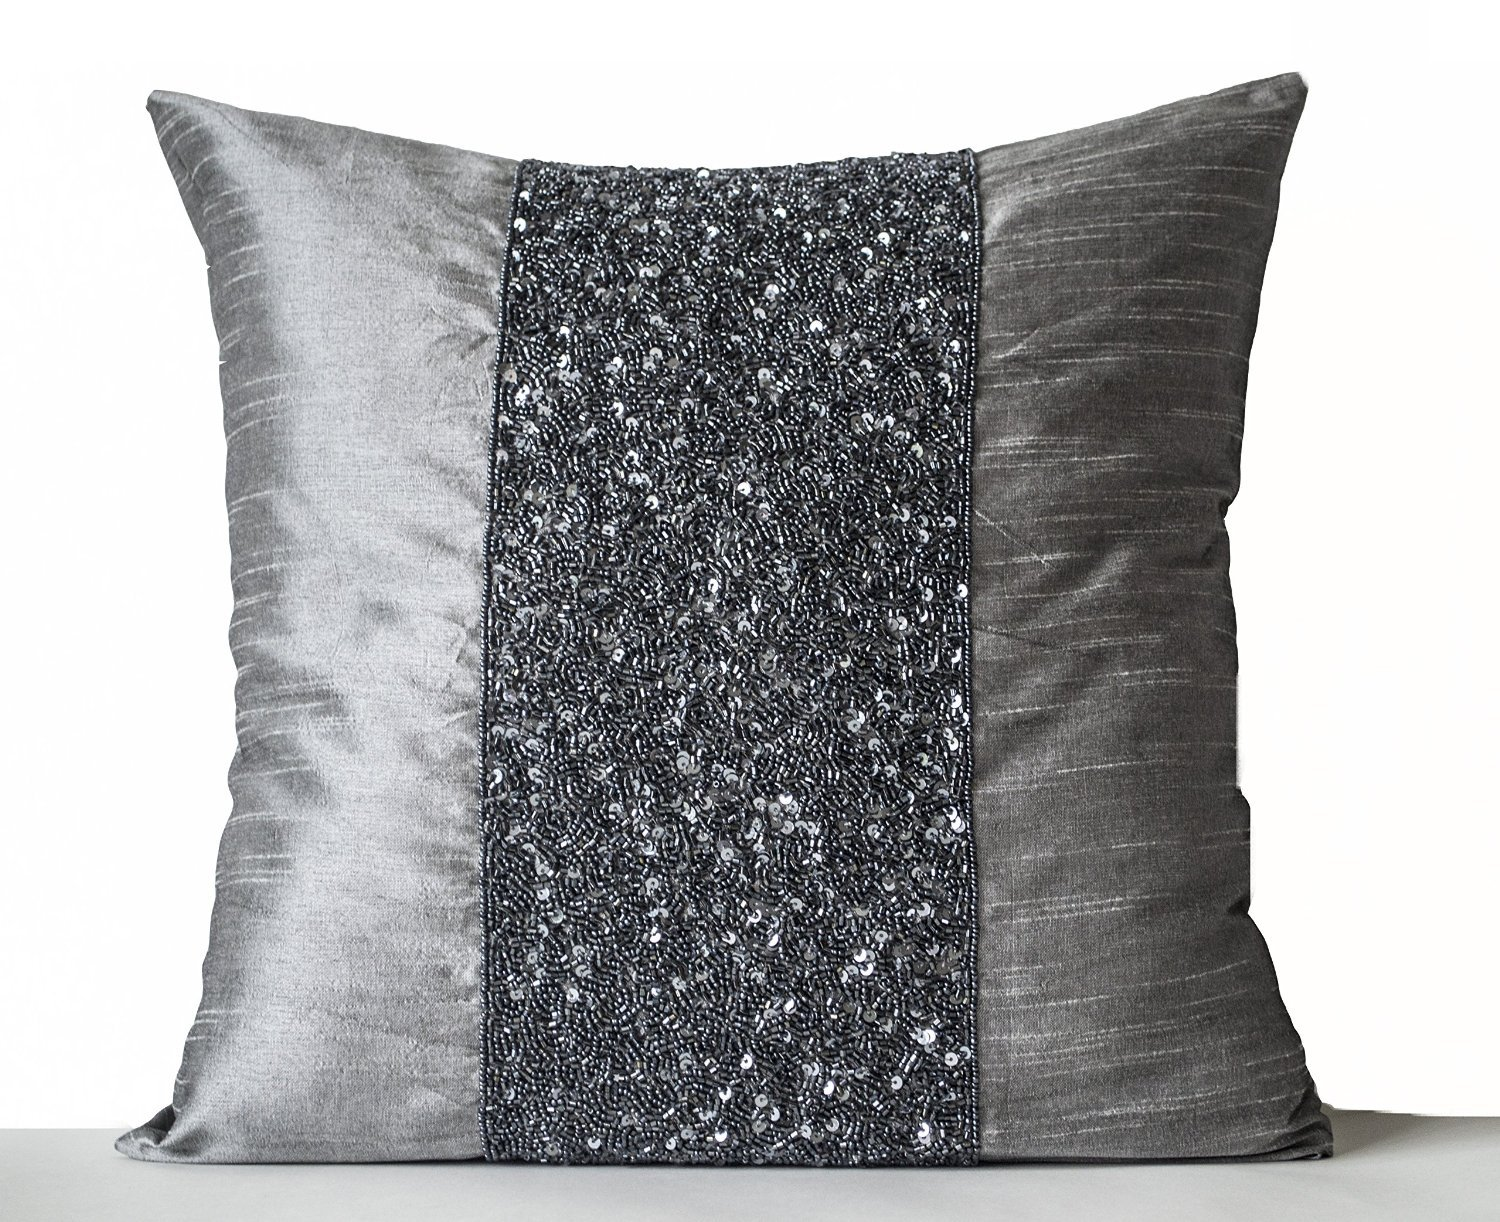 amazoncom amore beaute handcrafted grey beaded pillows grey  - amazoncom amore beaute handcrafted grey beaded pillows grey silkmetallic pillows grey sparkle pillow gray beads embroidered pillow cover gift